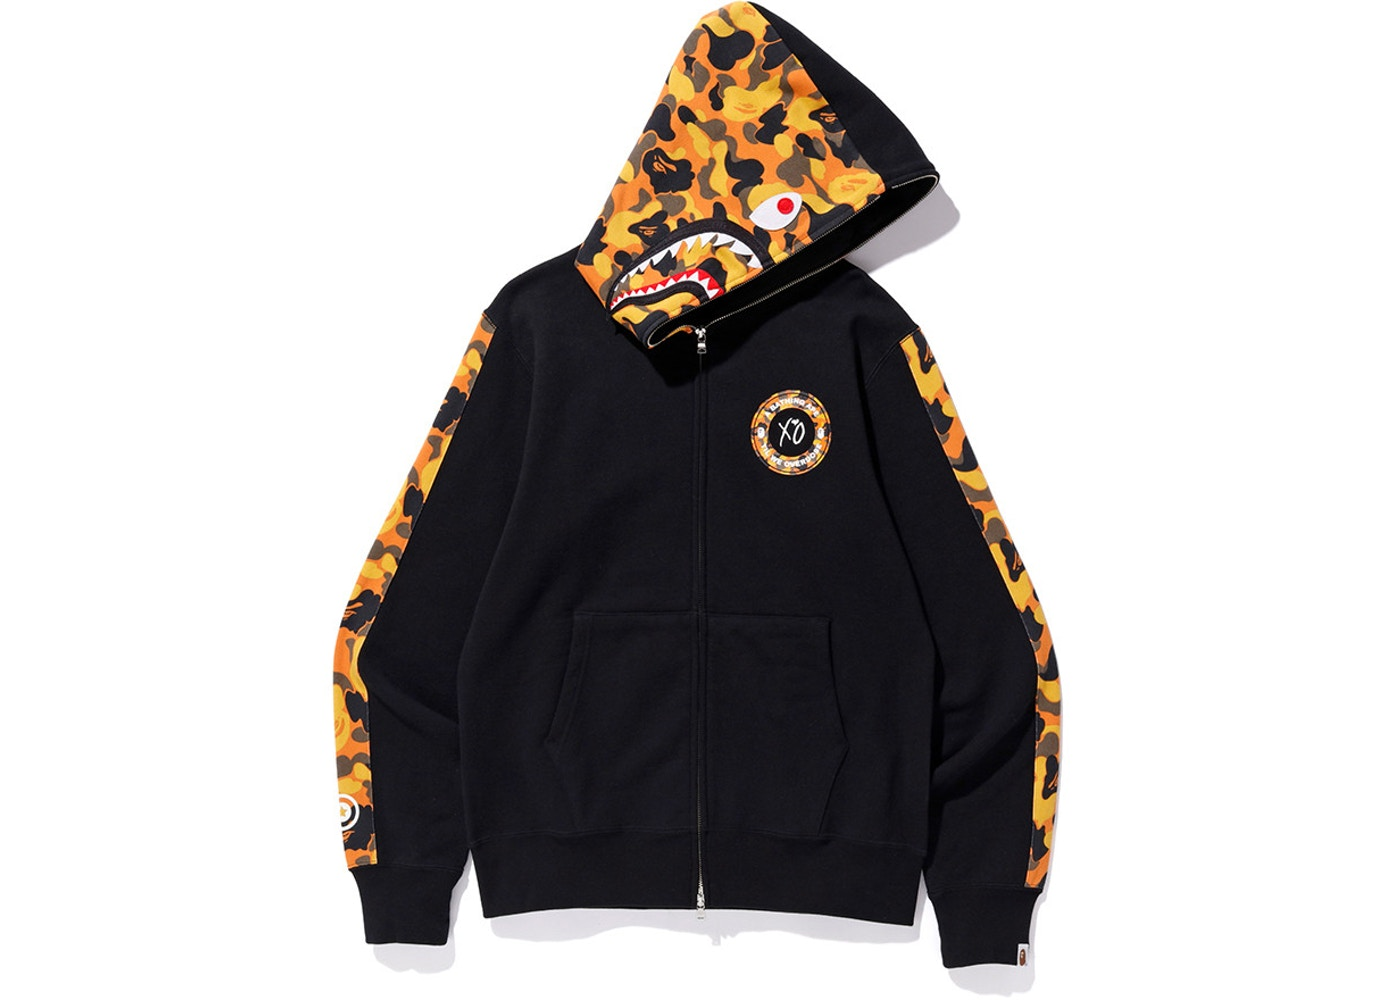 7aa0c2de BAPE x XO Shark Zip Up Hoodie Black. x XO Shark Zip Up